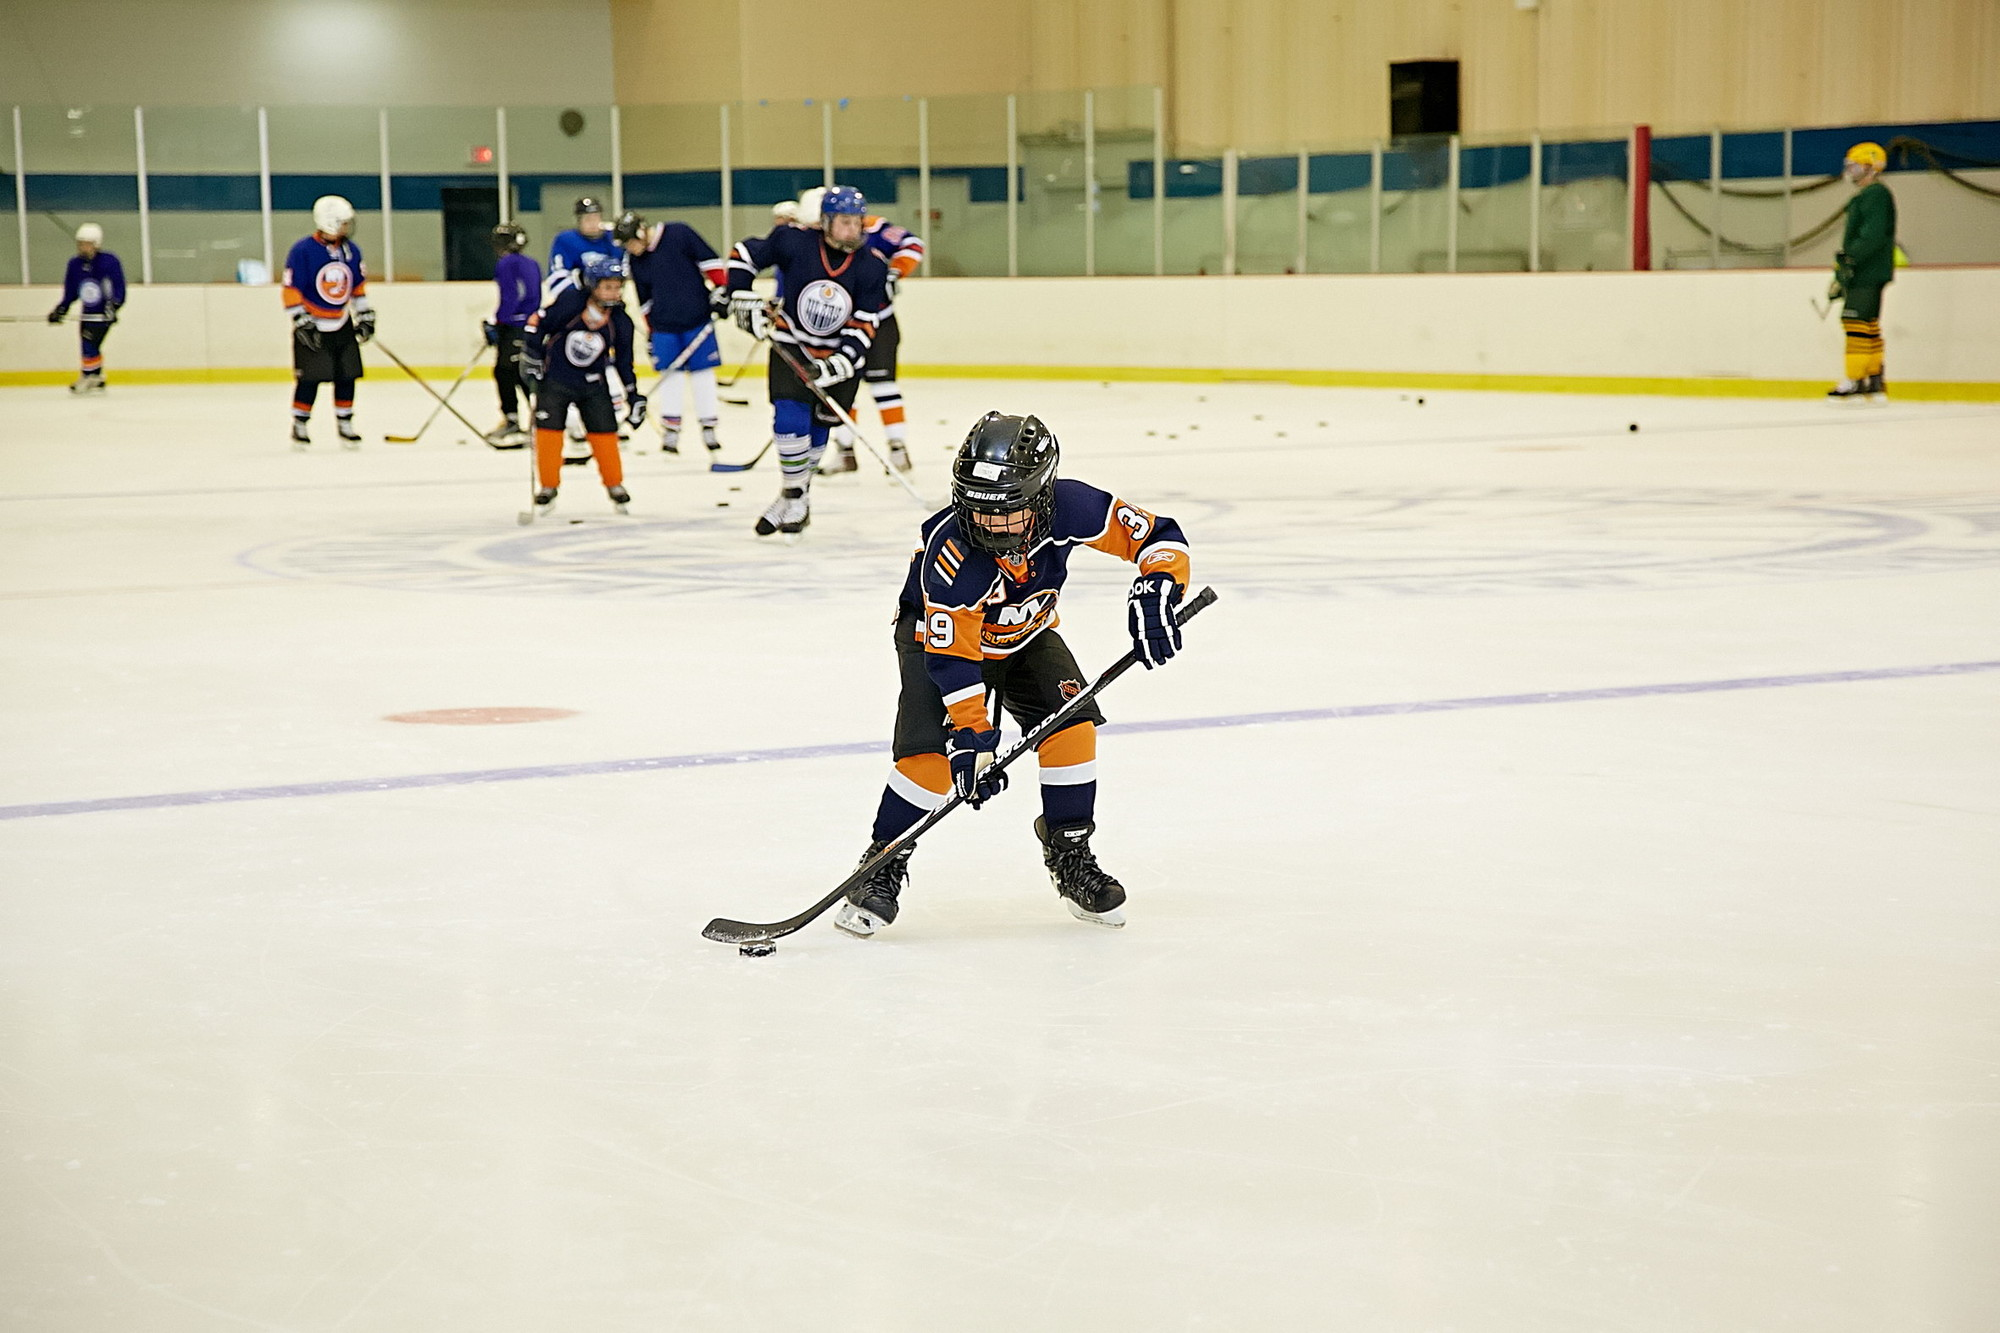 Stick handling is one of the many skills Hebrew Hockey League players learn during the two hours sessions.